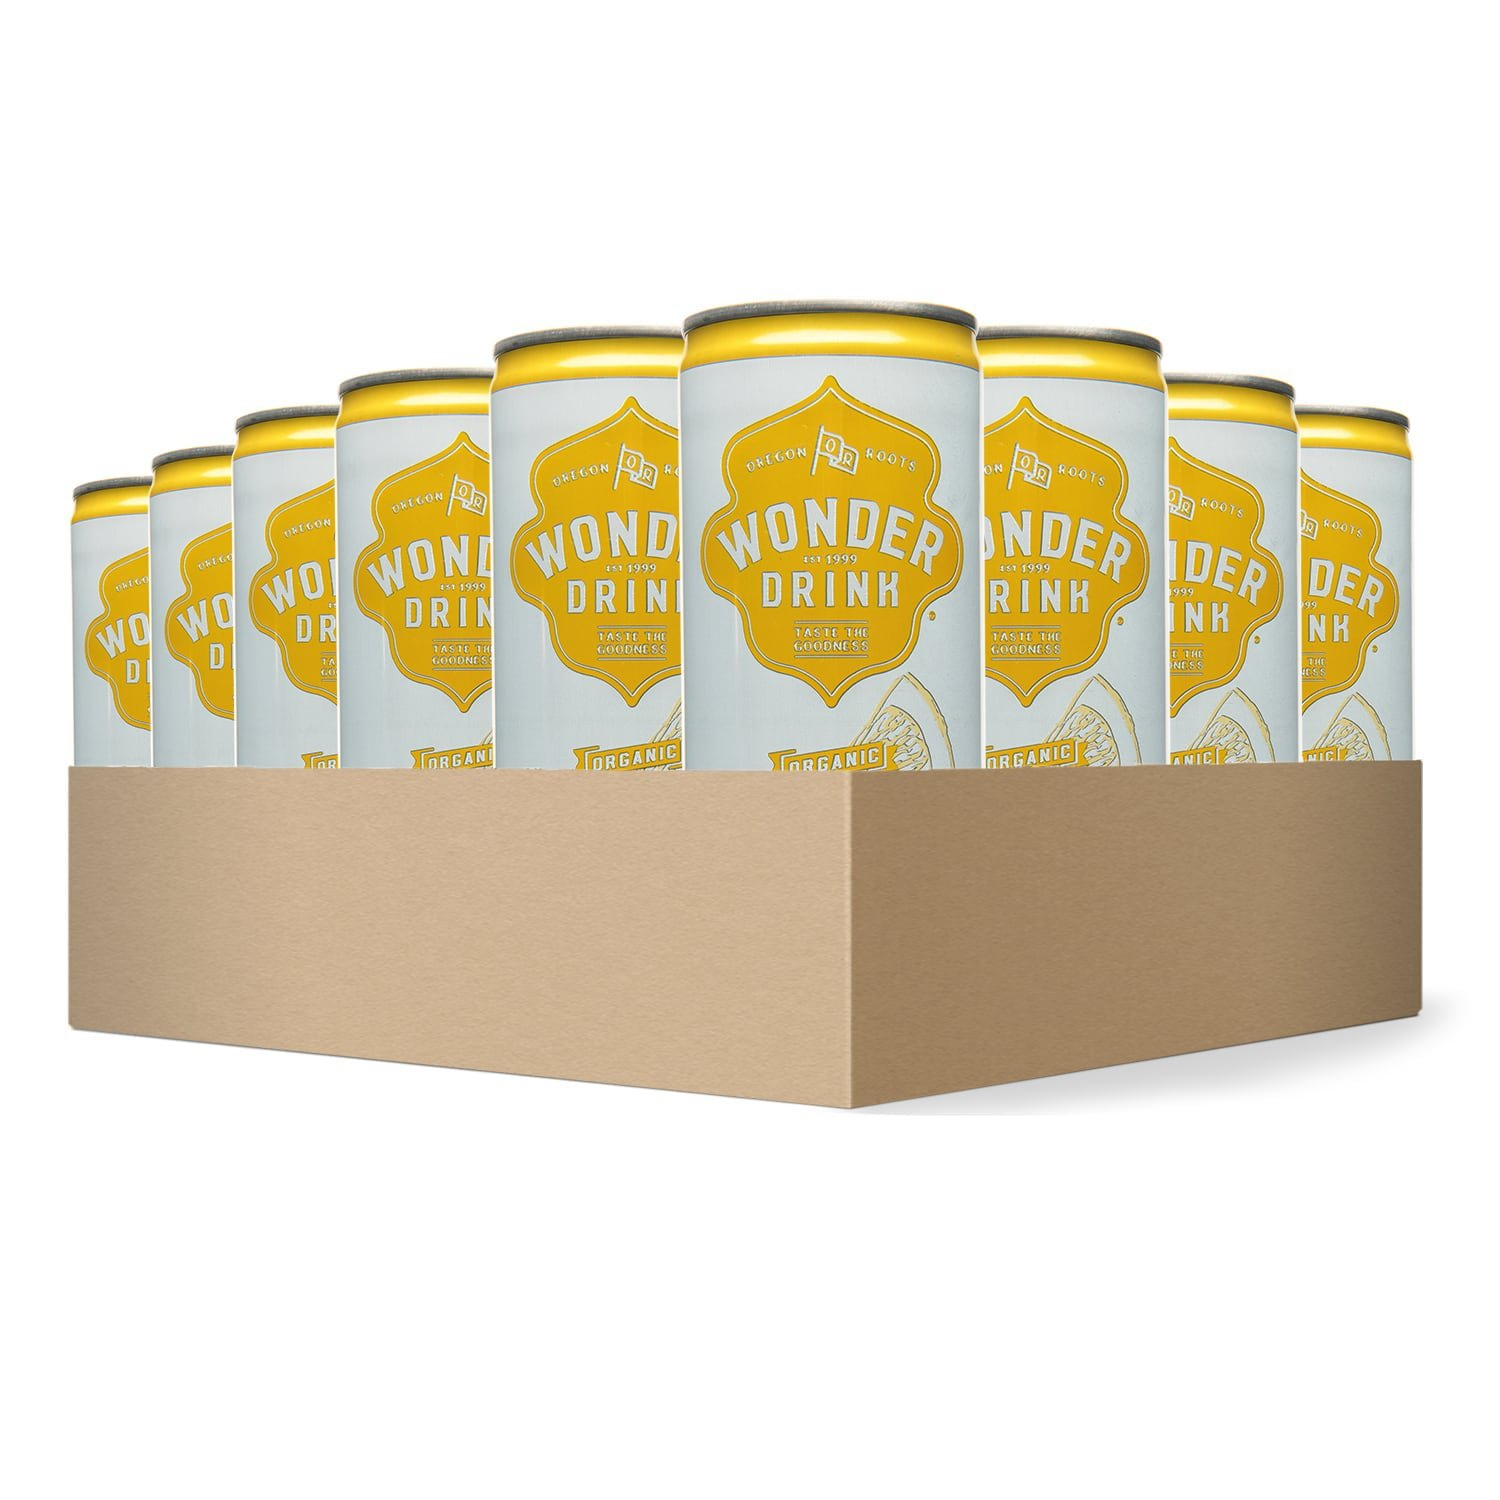 Wonder Drink Kombucha, Organic Green Tea with Lemon Sparkling Fermented Tea, 8.4oz Can (Pack of 24) by Kombucha Wonder Drink